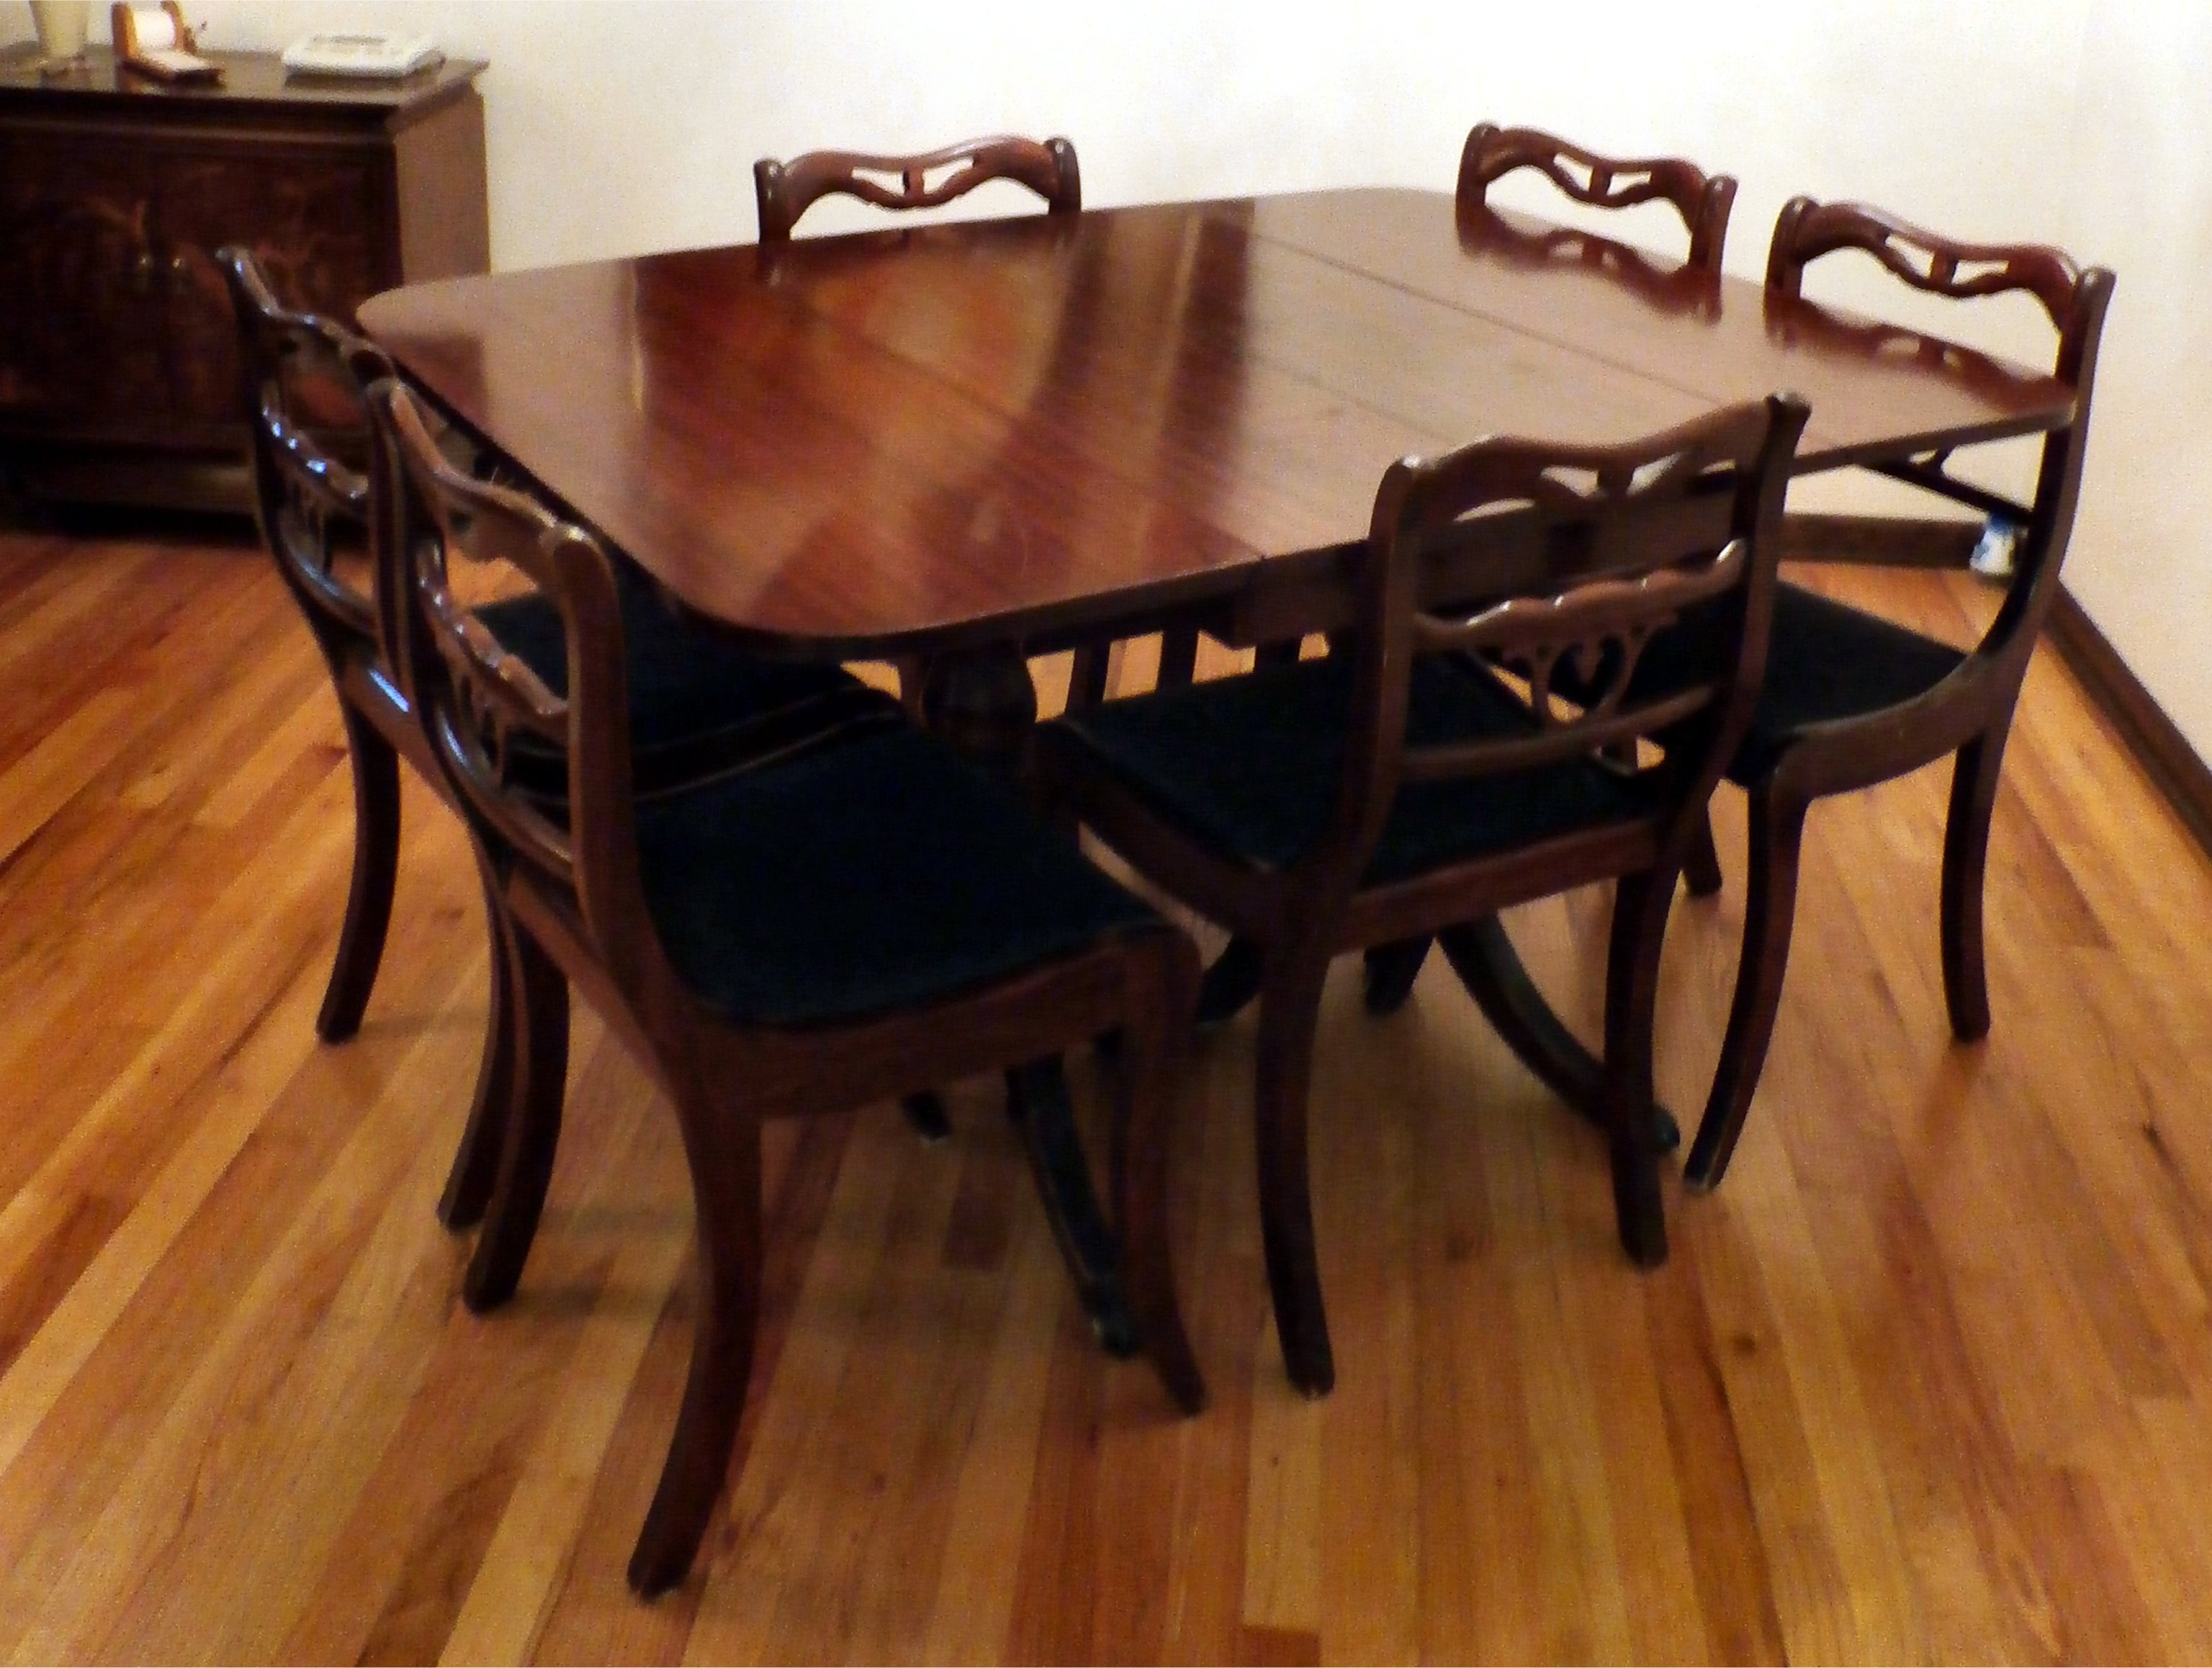 Original 1890 1916 Antique Brickwede Furniture Dining Room